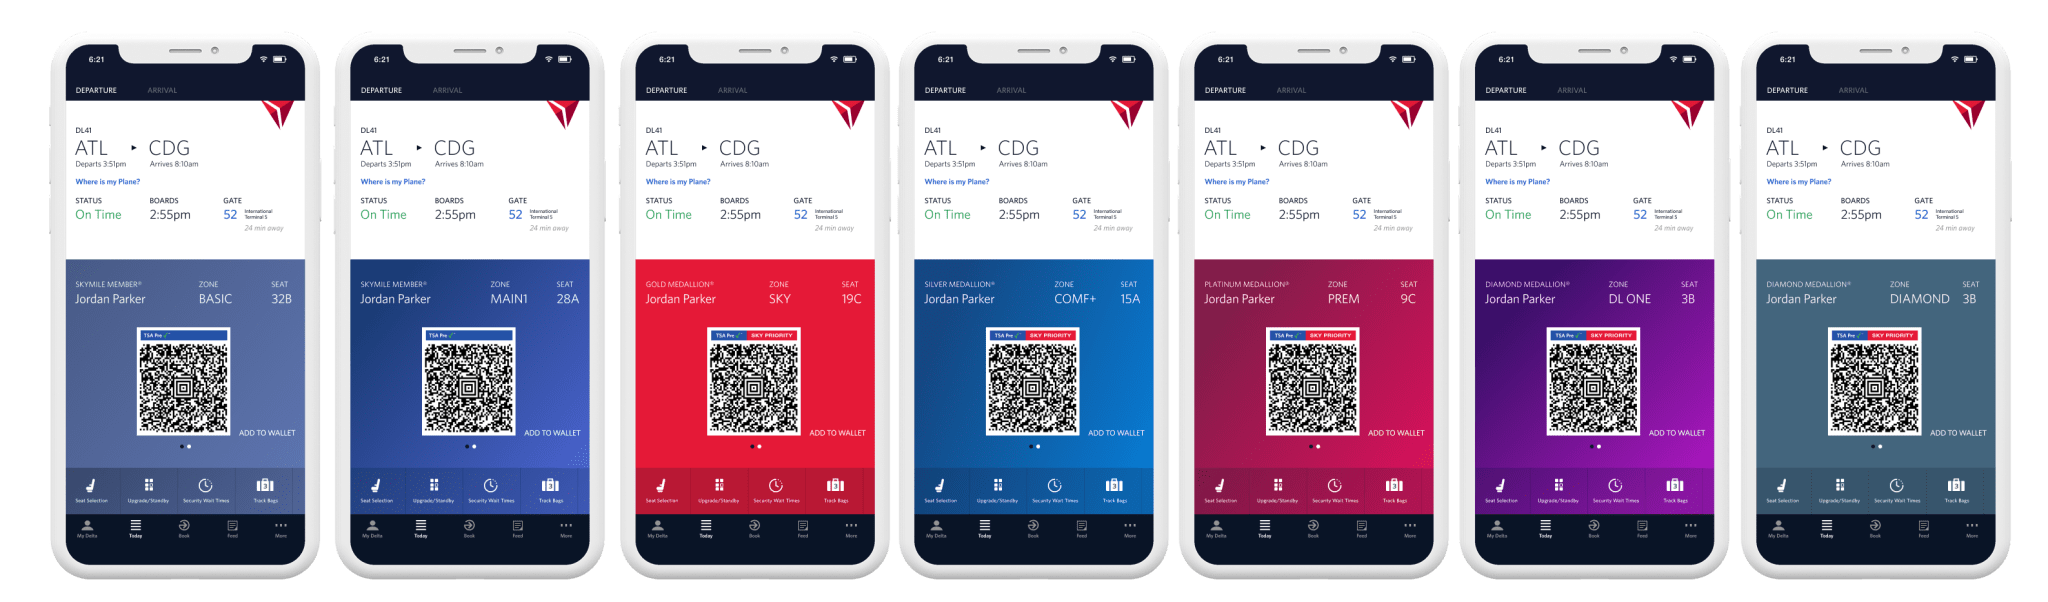 Delta announced a new palette of colors for its mobile app (Image courtesy of Delta Air Lines)